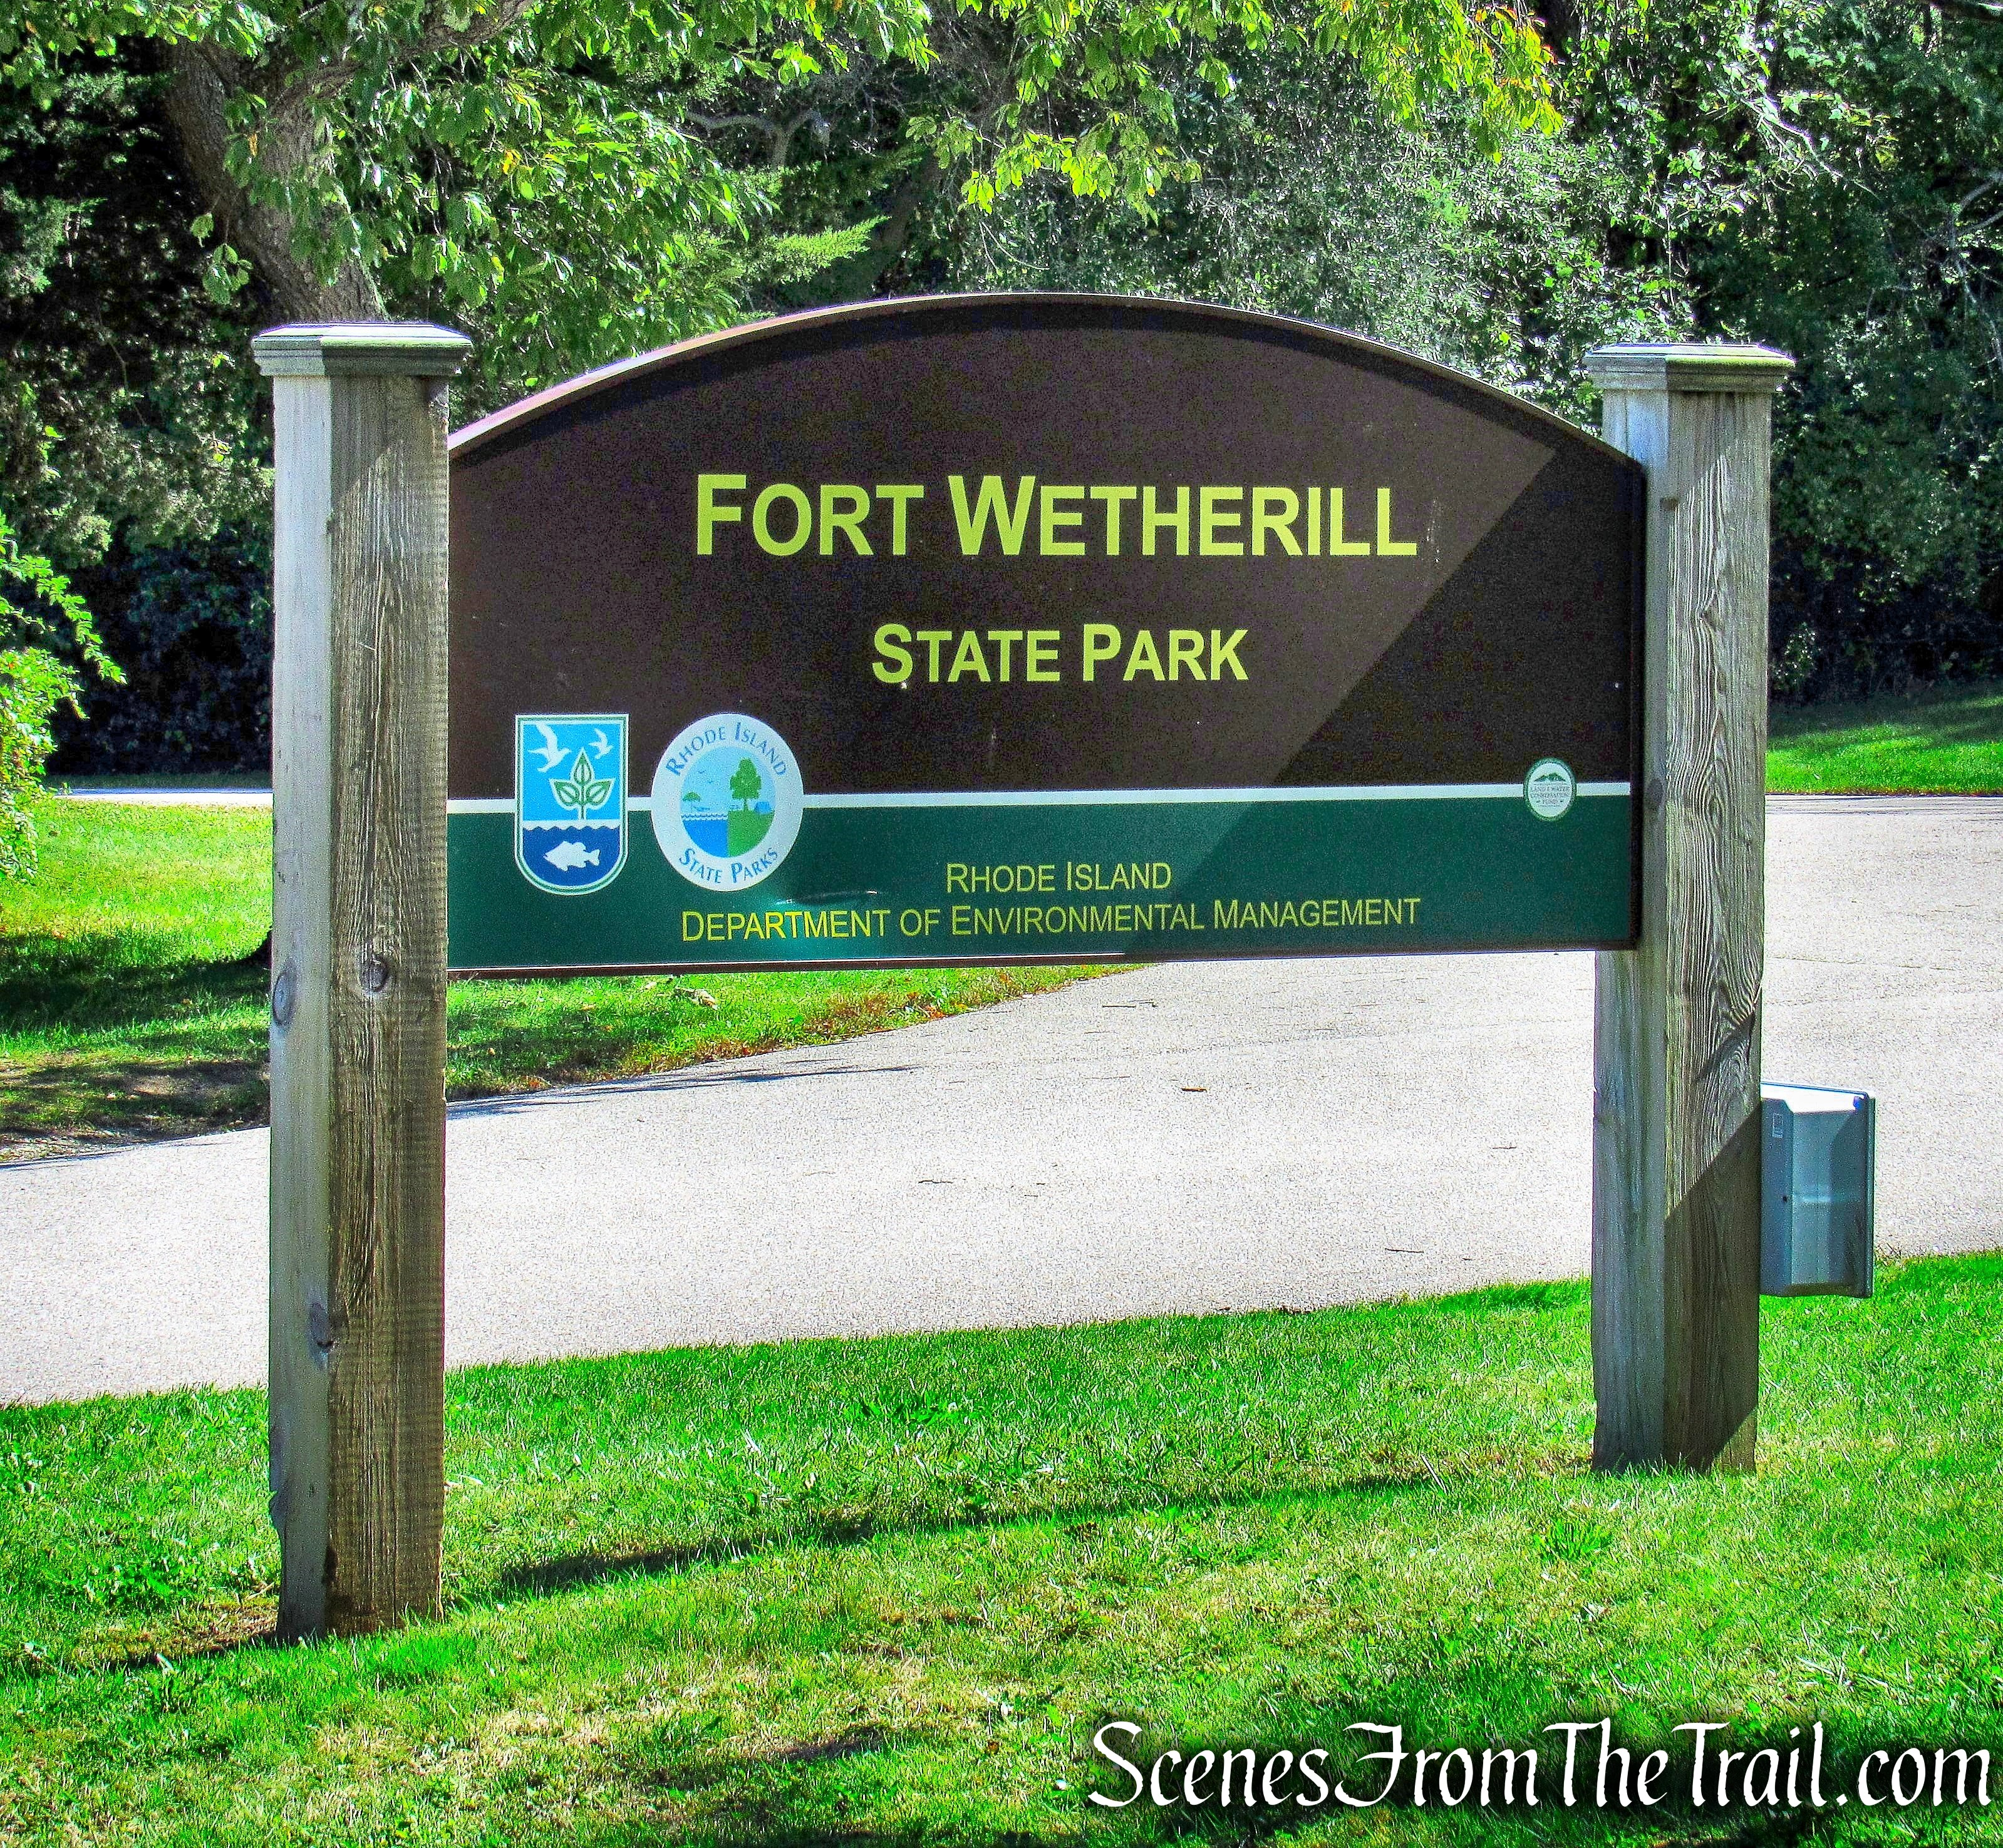 Fort Wetherill State Park